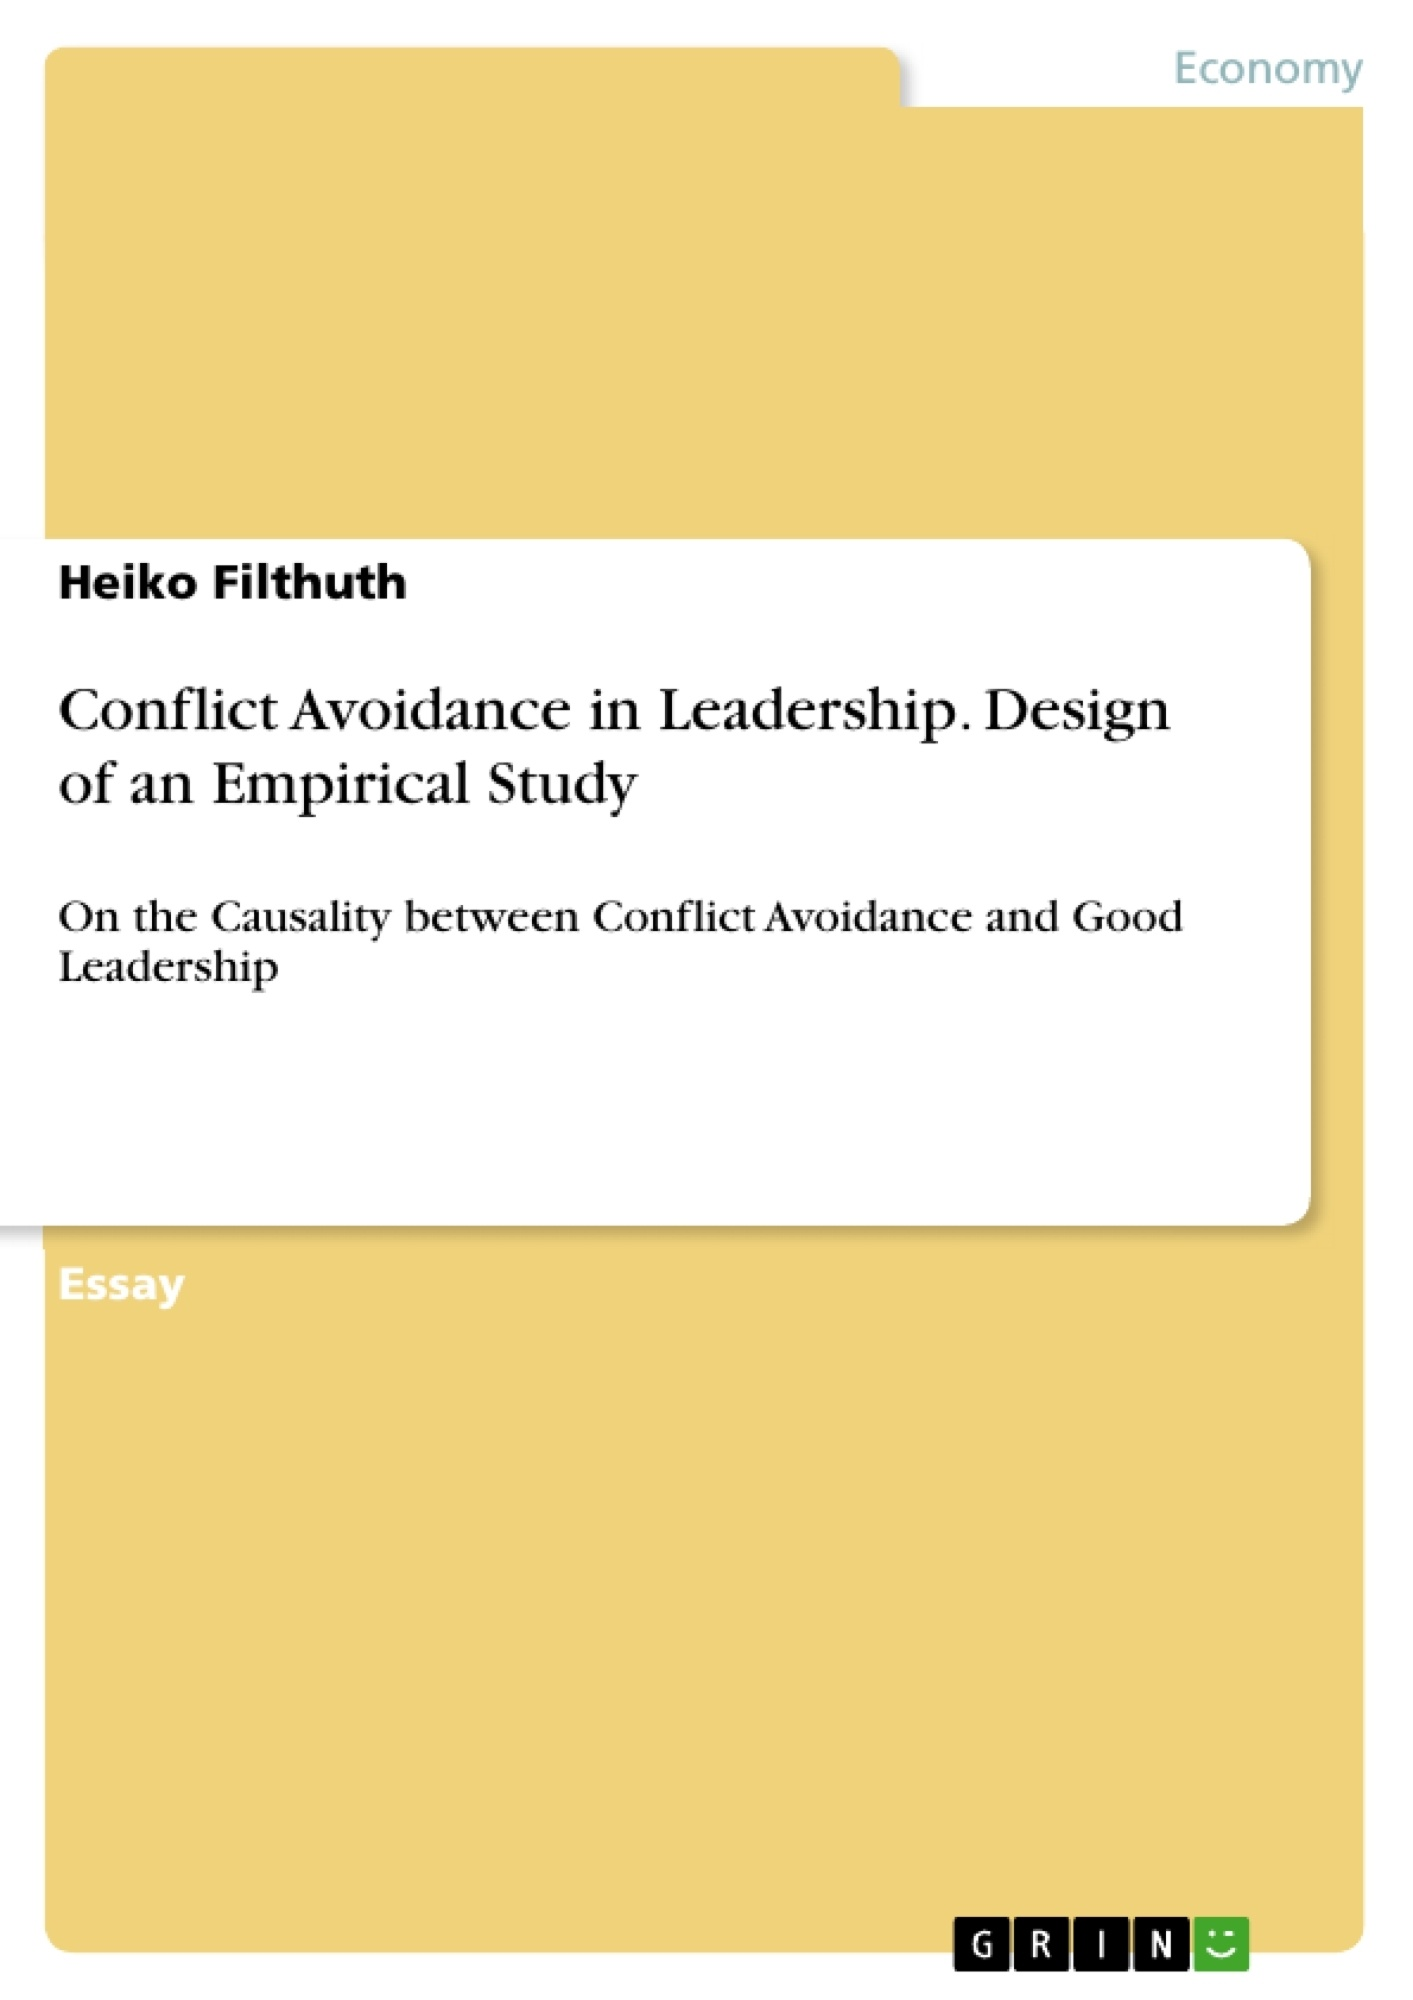 Title: Conflict Avoidance in Leadership. Design of an Empirical Study